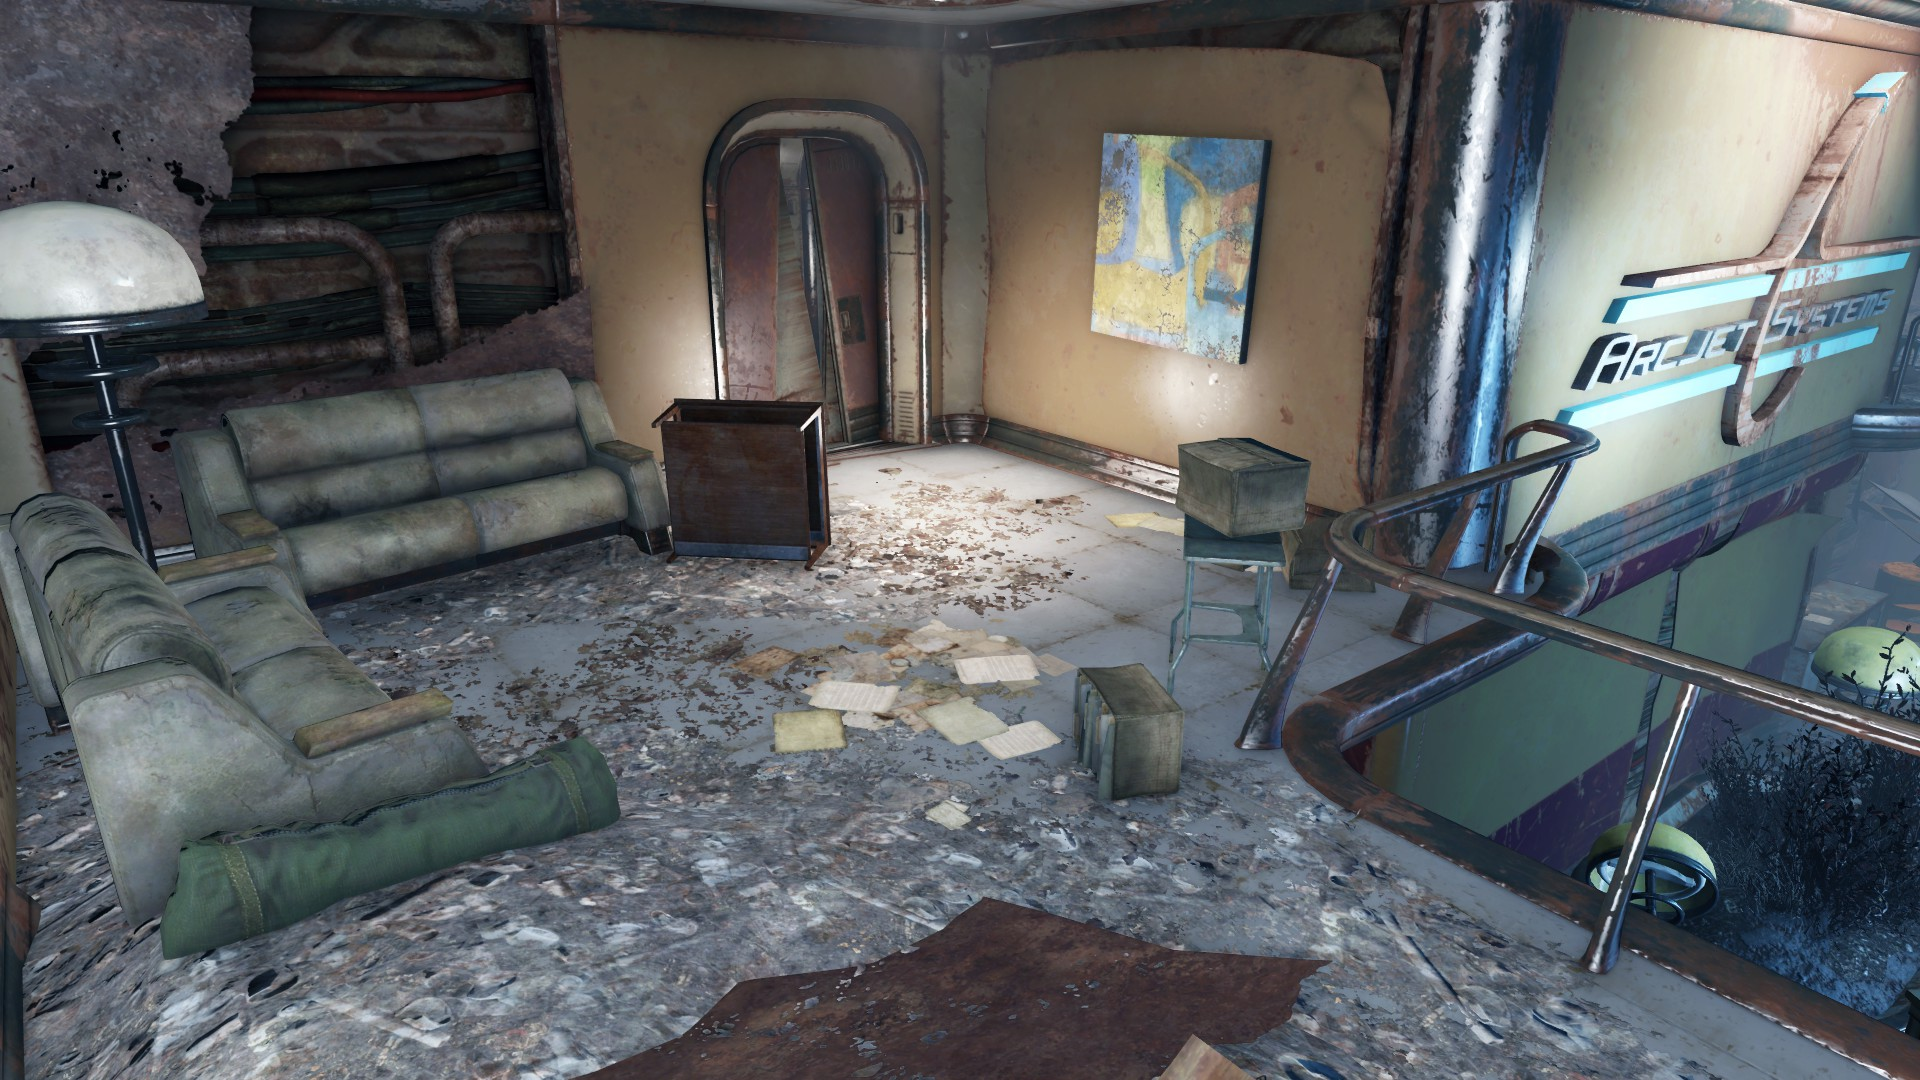 FO4 InaccessibleDuffleBag ArcJetSystems